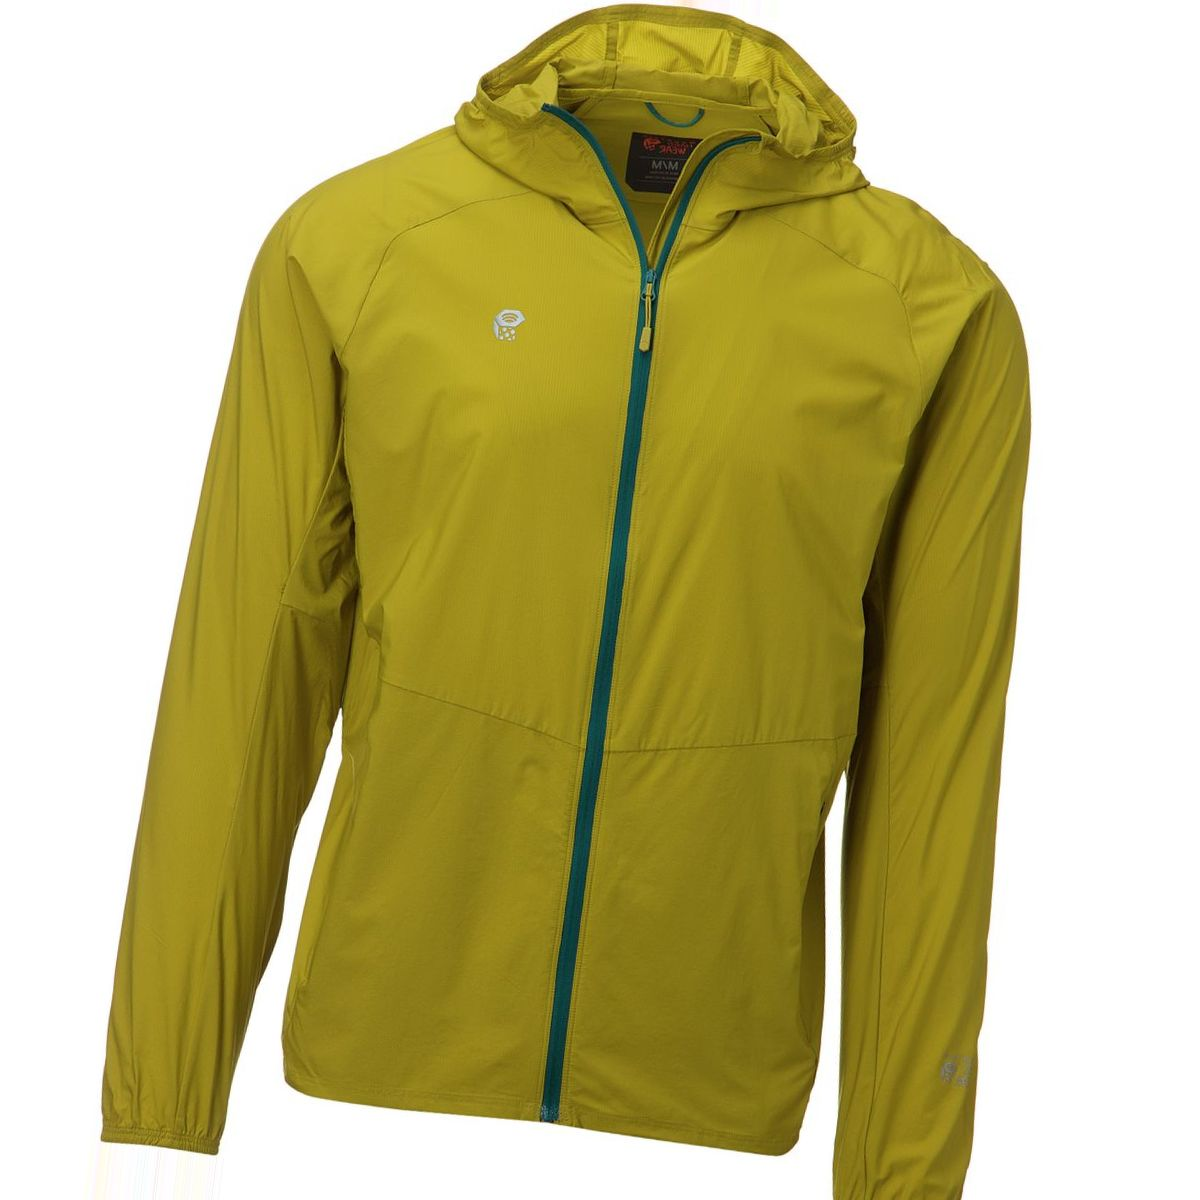 Mountain Hardwear Kor Preshell Hooded Jacket - Men's